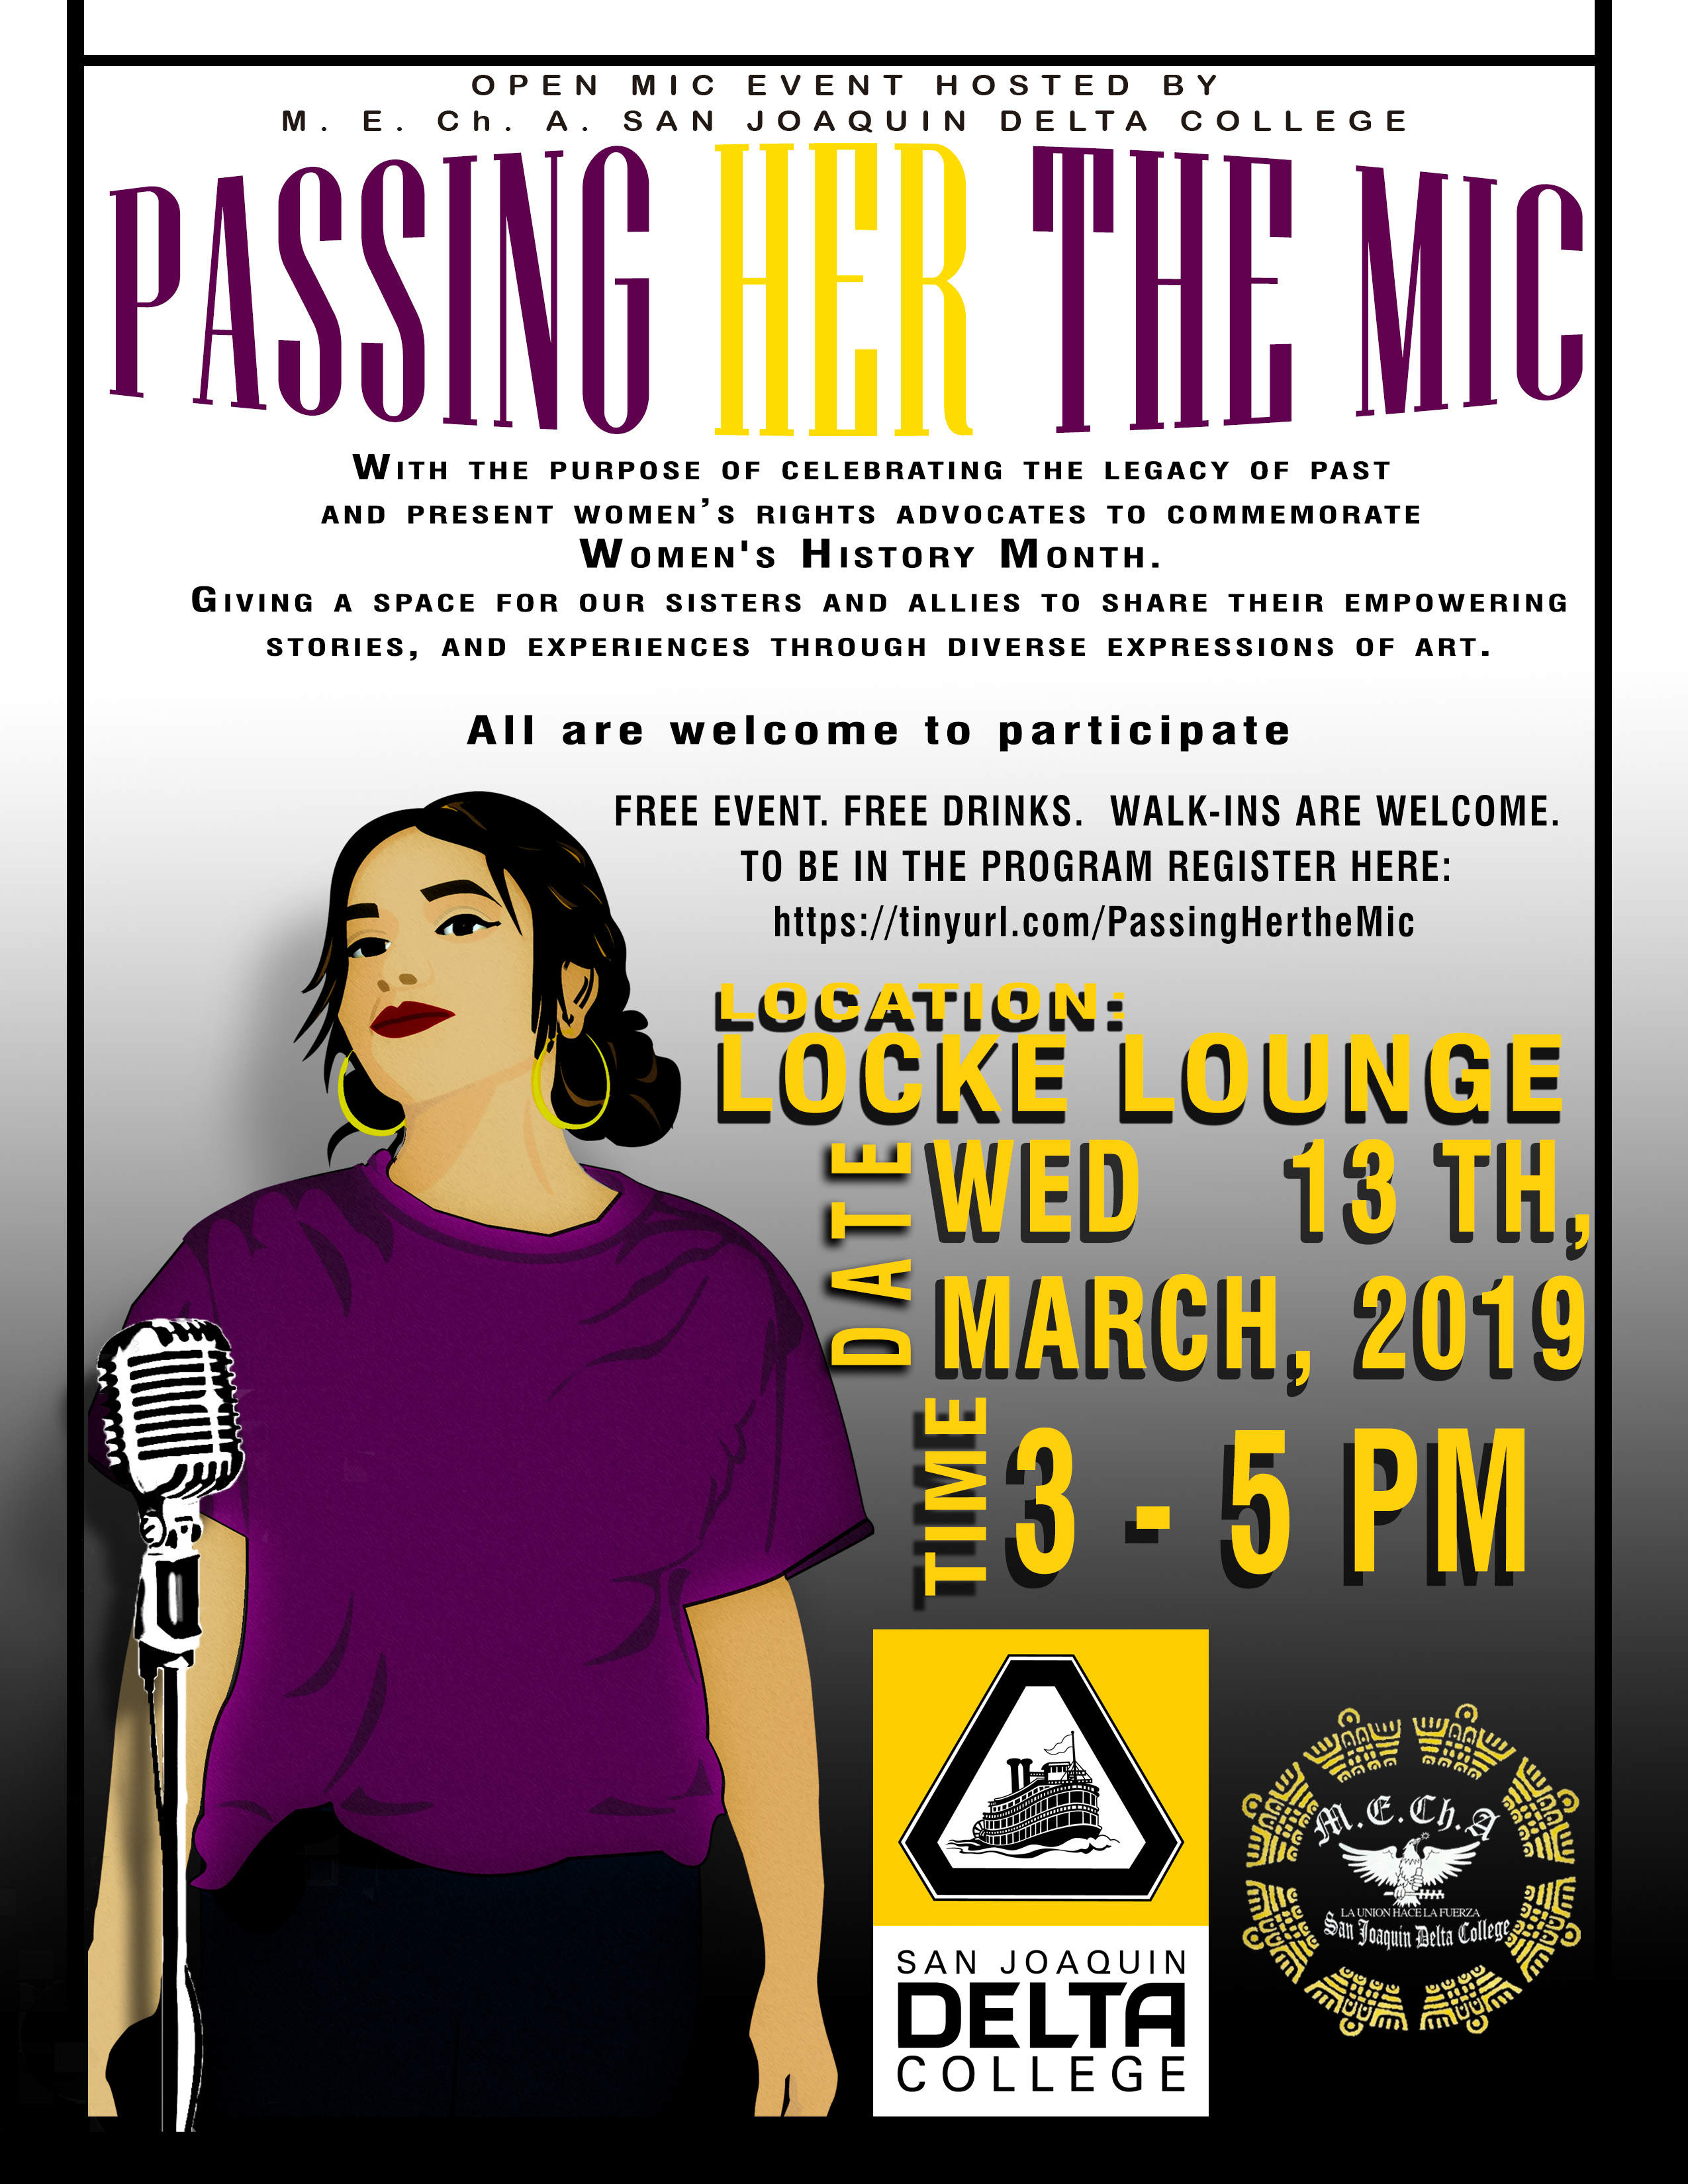 """Passing Her The Mic"" is one of a number of events planned at San Joaquin Delta College for Women's History Month."